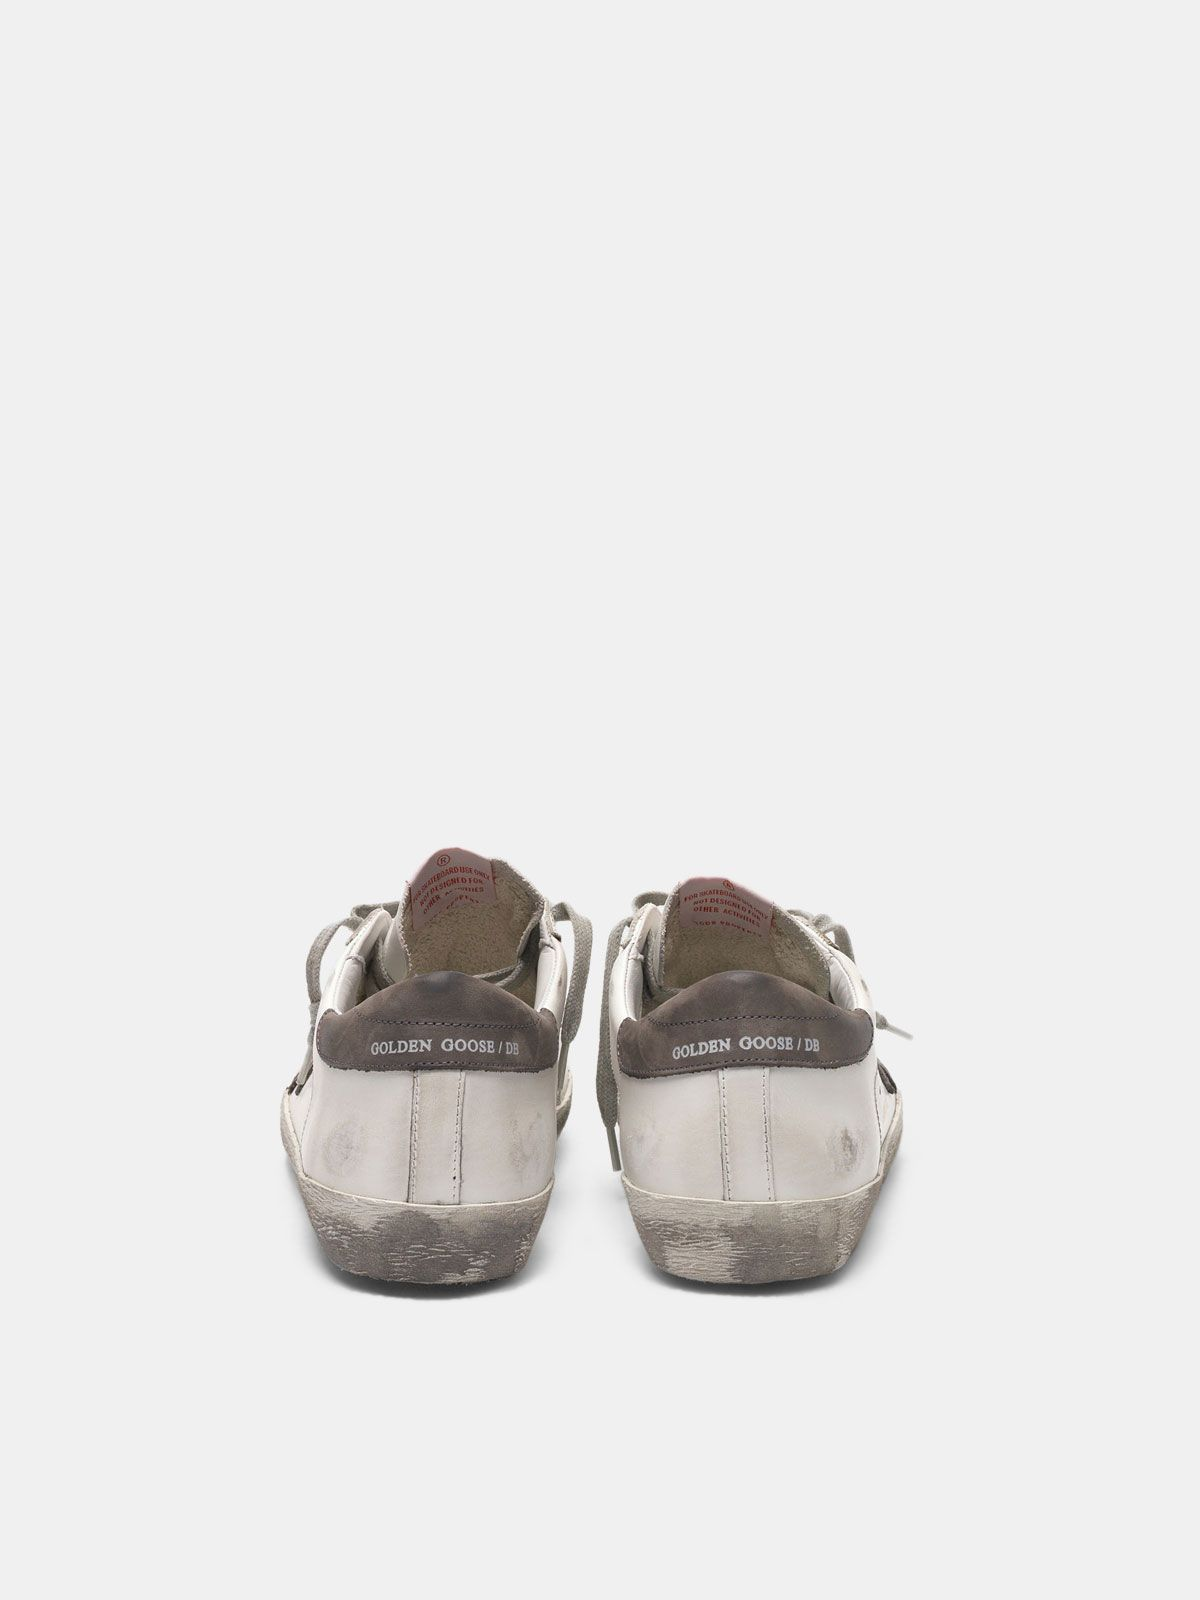 Golden Goose - Super-Star sneakers in leather with star and heel tab in nubuck in